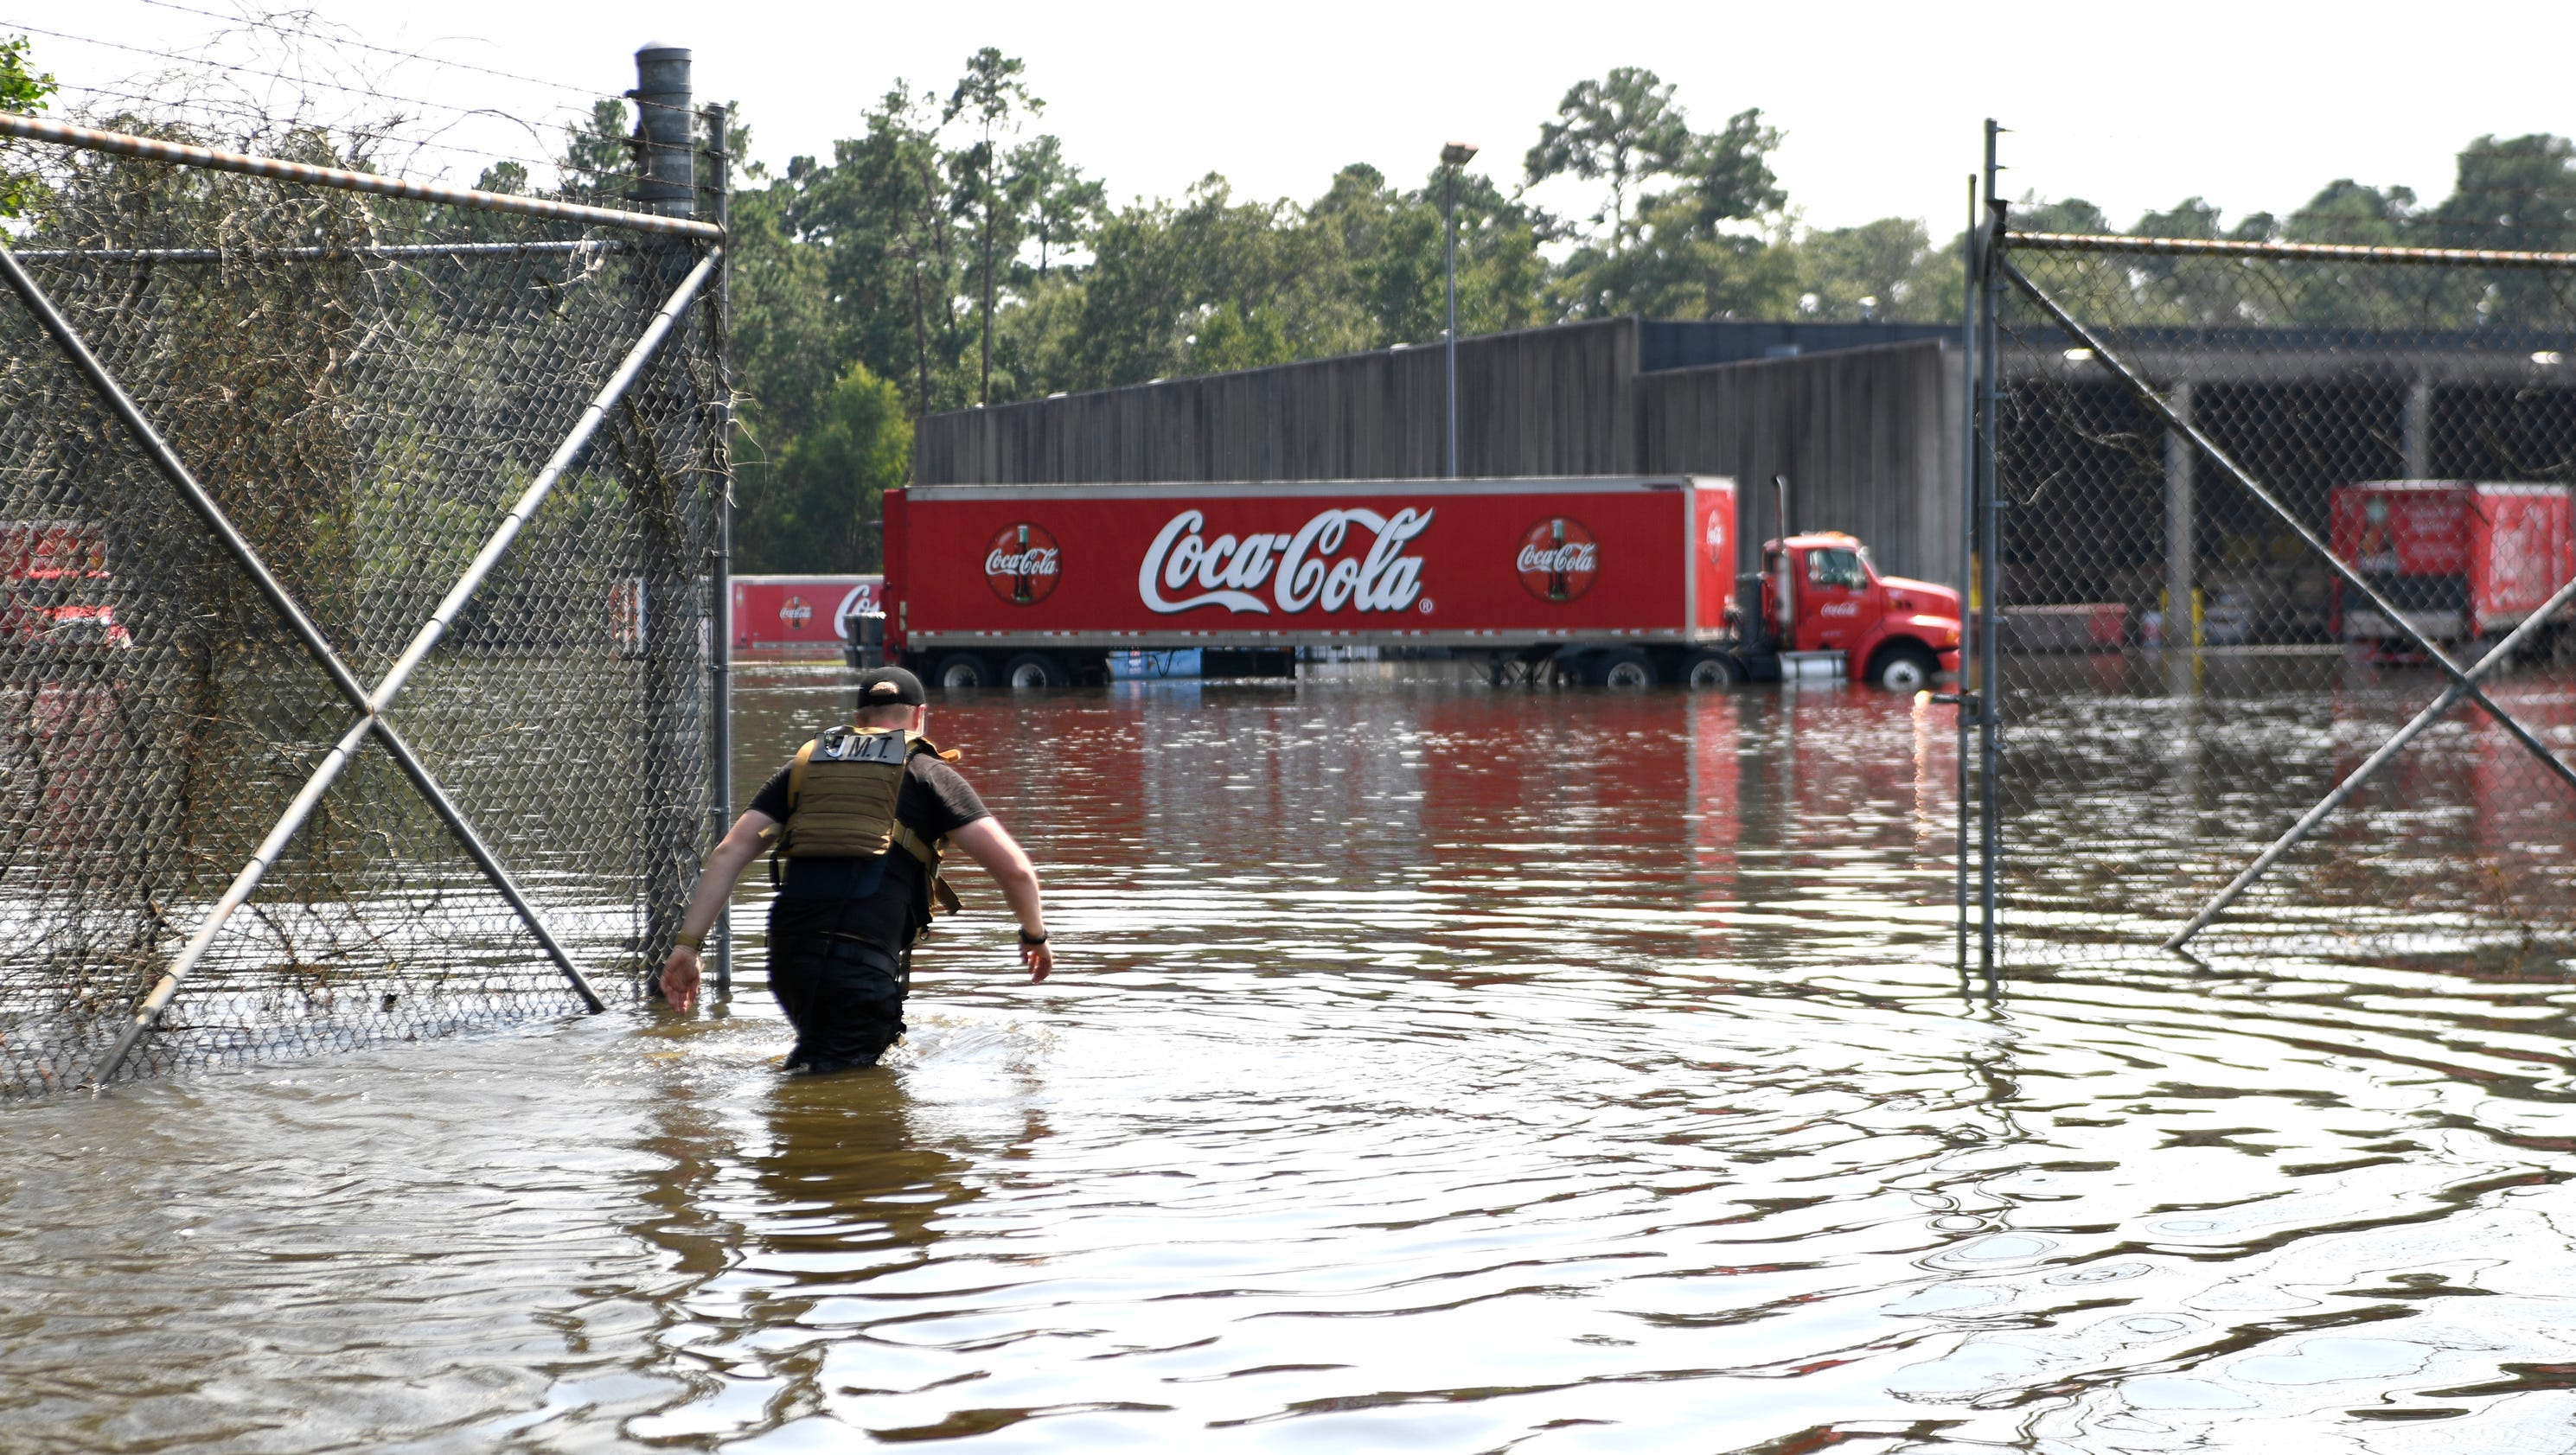 Coca-Cola grants permission to two men In Beaumont, Texas -- a city with no water -- to steal bottled water from the company's warehouse